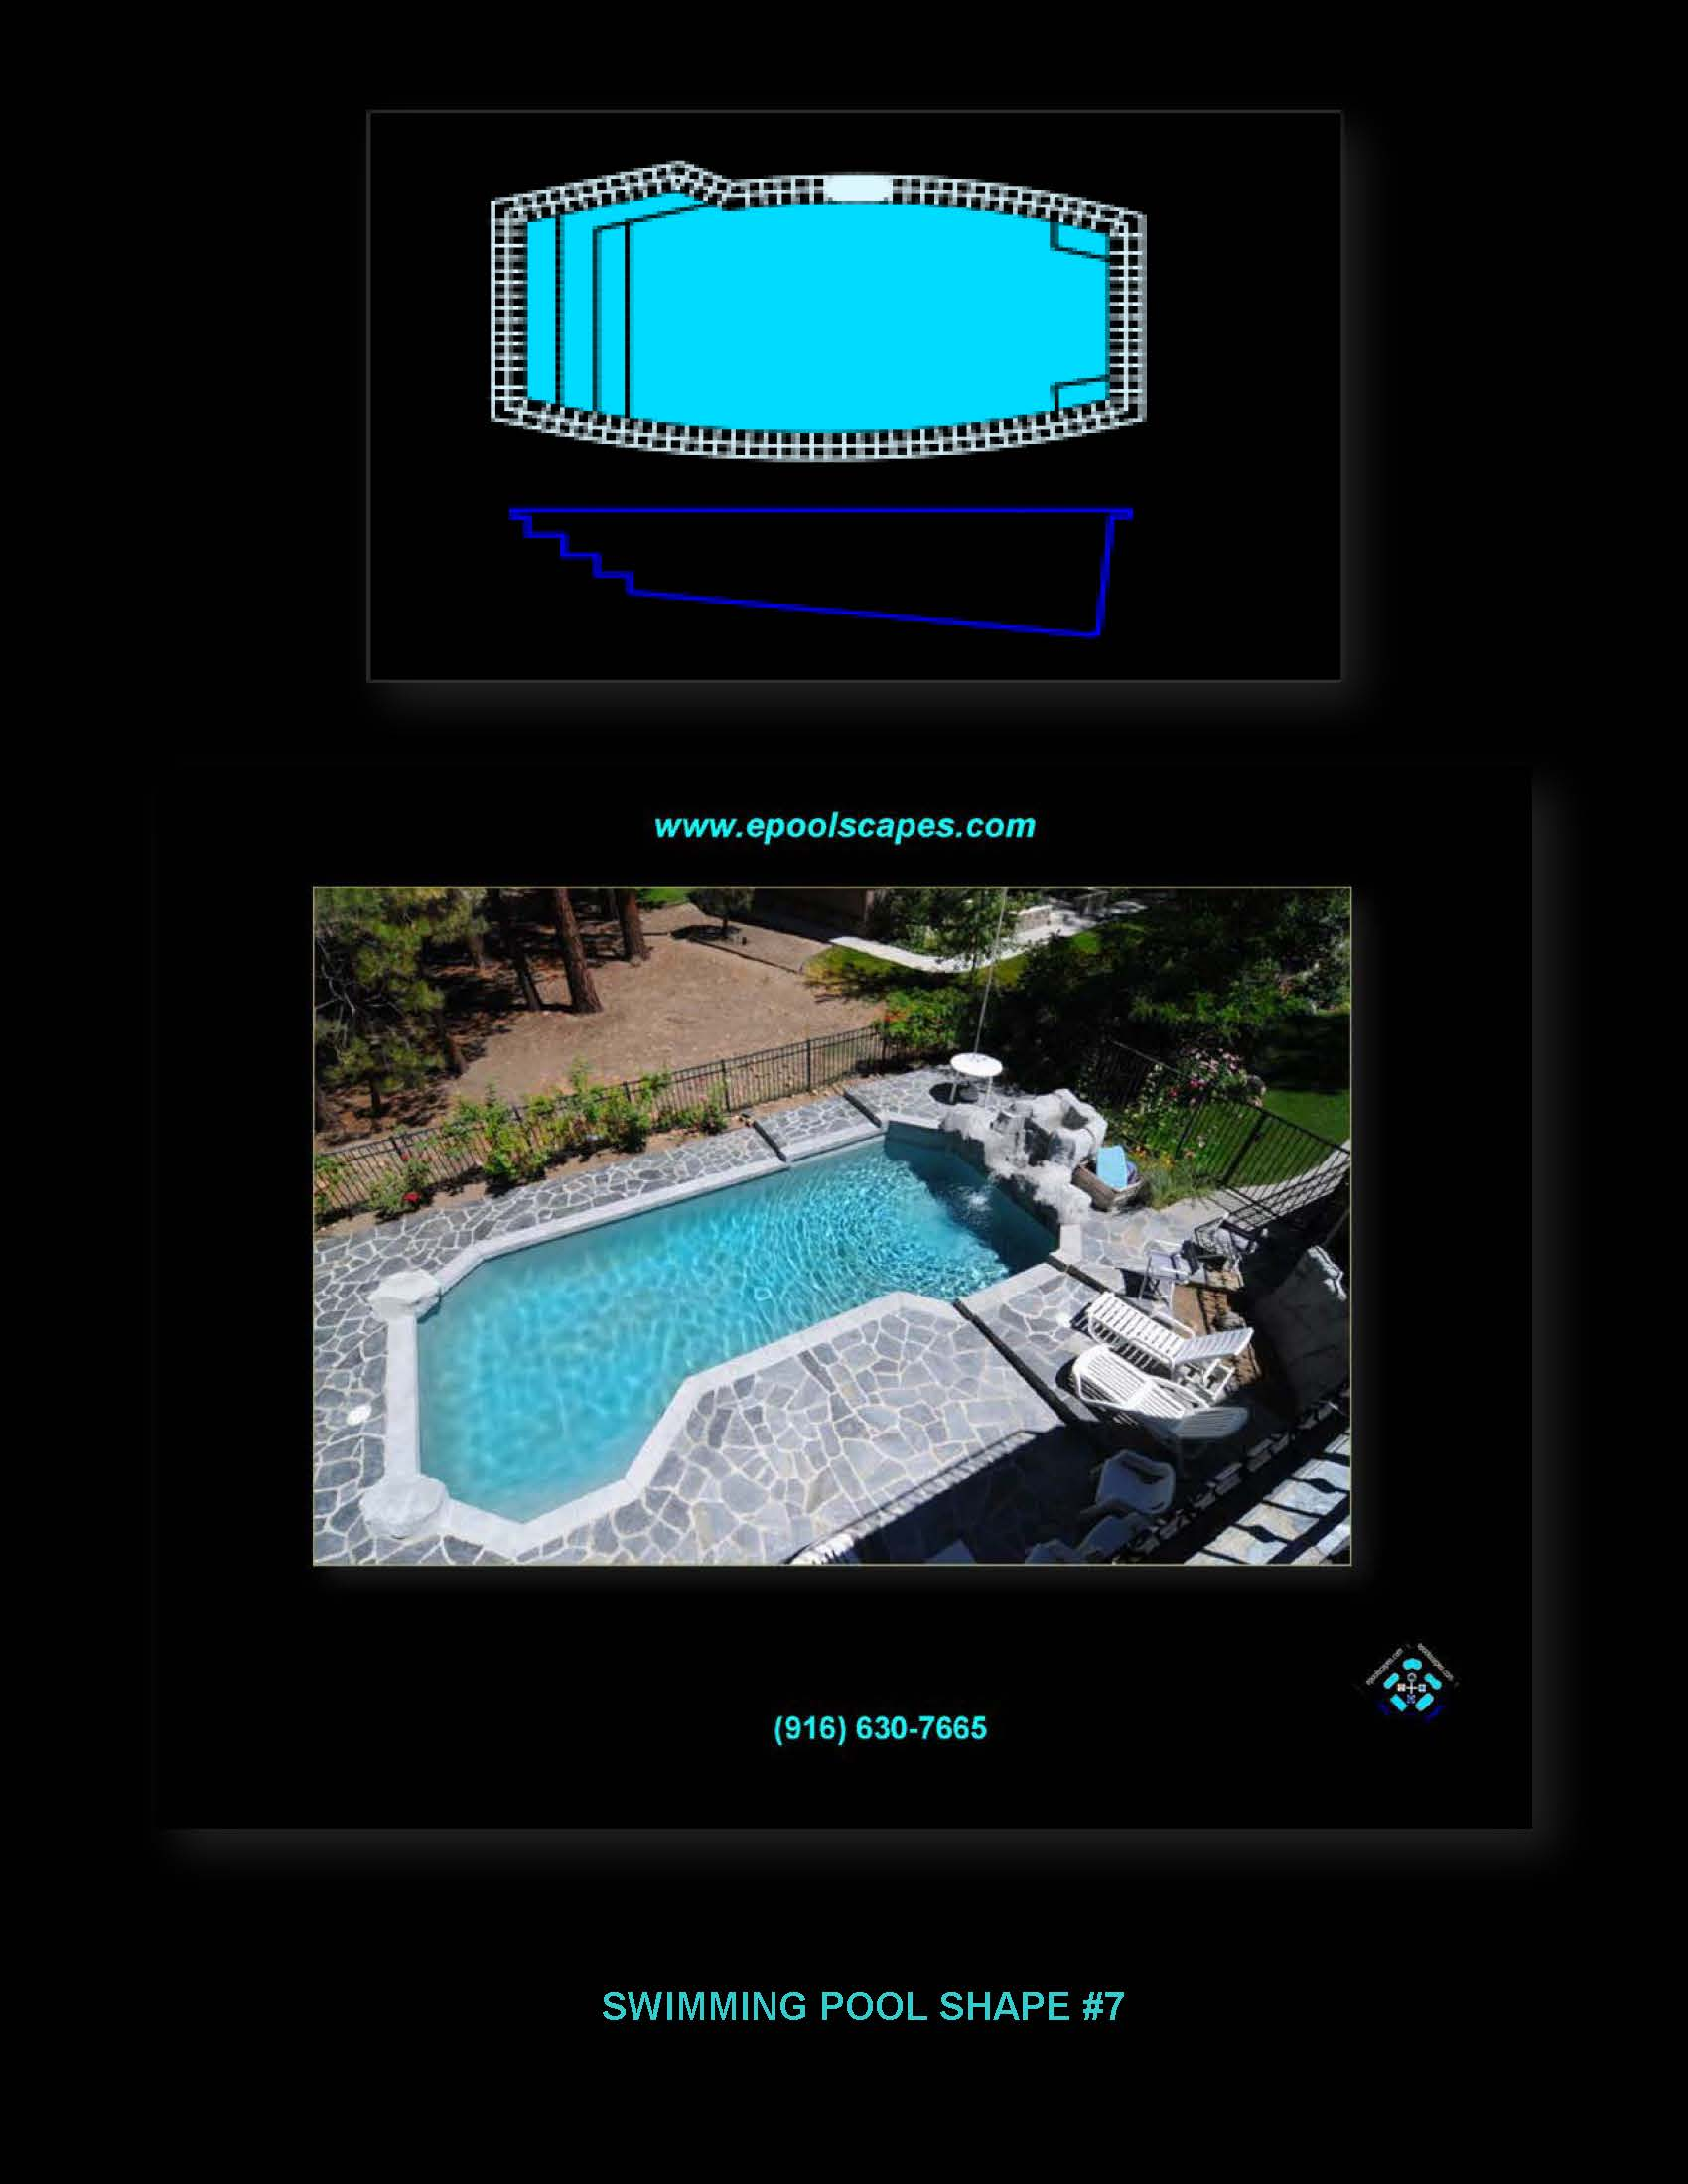 swimming pool contractor 800 766 5259. Black Bedroom Furniture Sets. Home Design Ideas